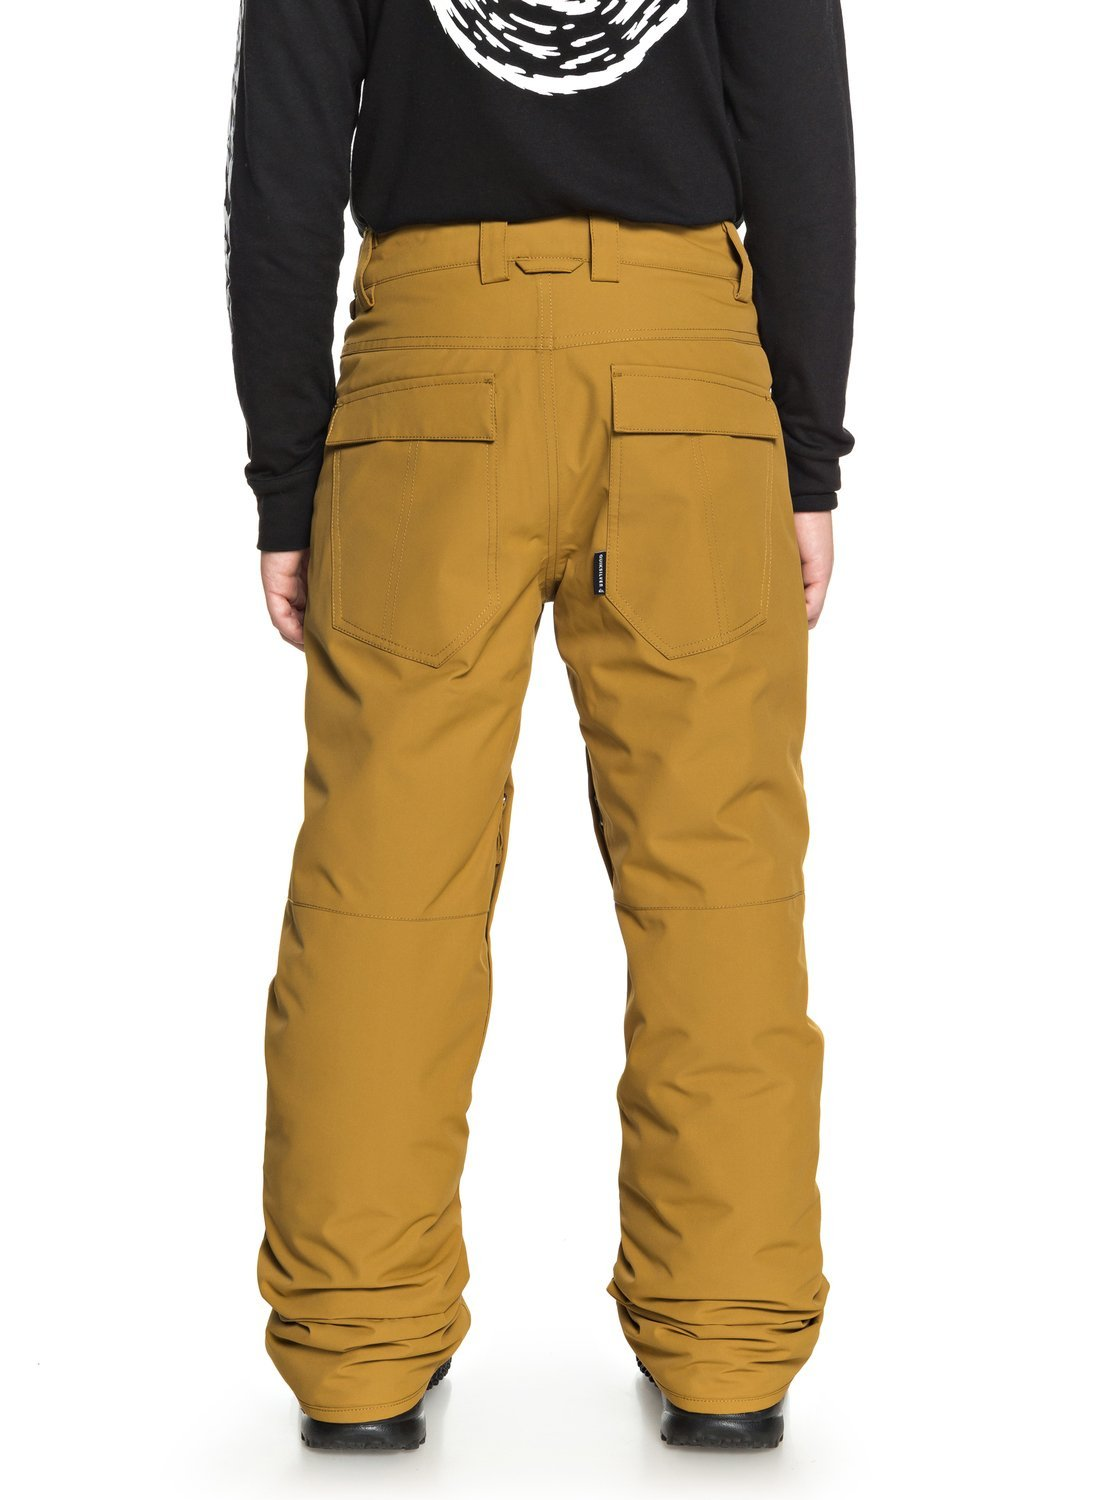 Quiksilver Estate Youth Snow Pants - 88 Gear